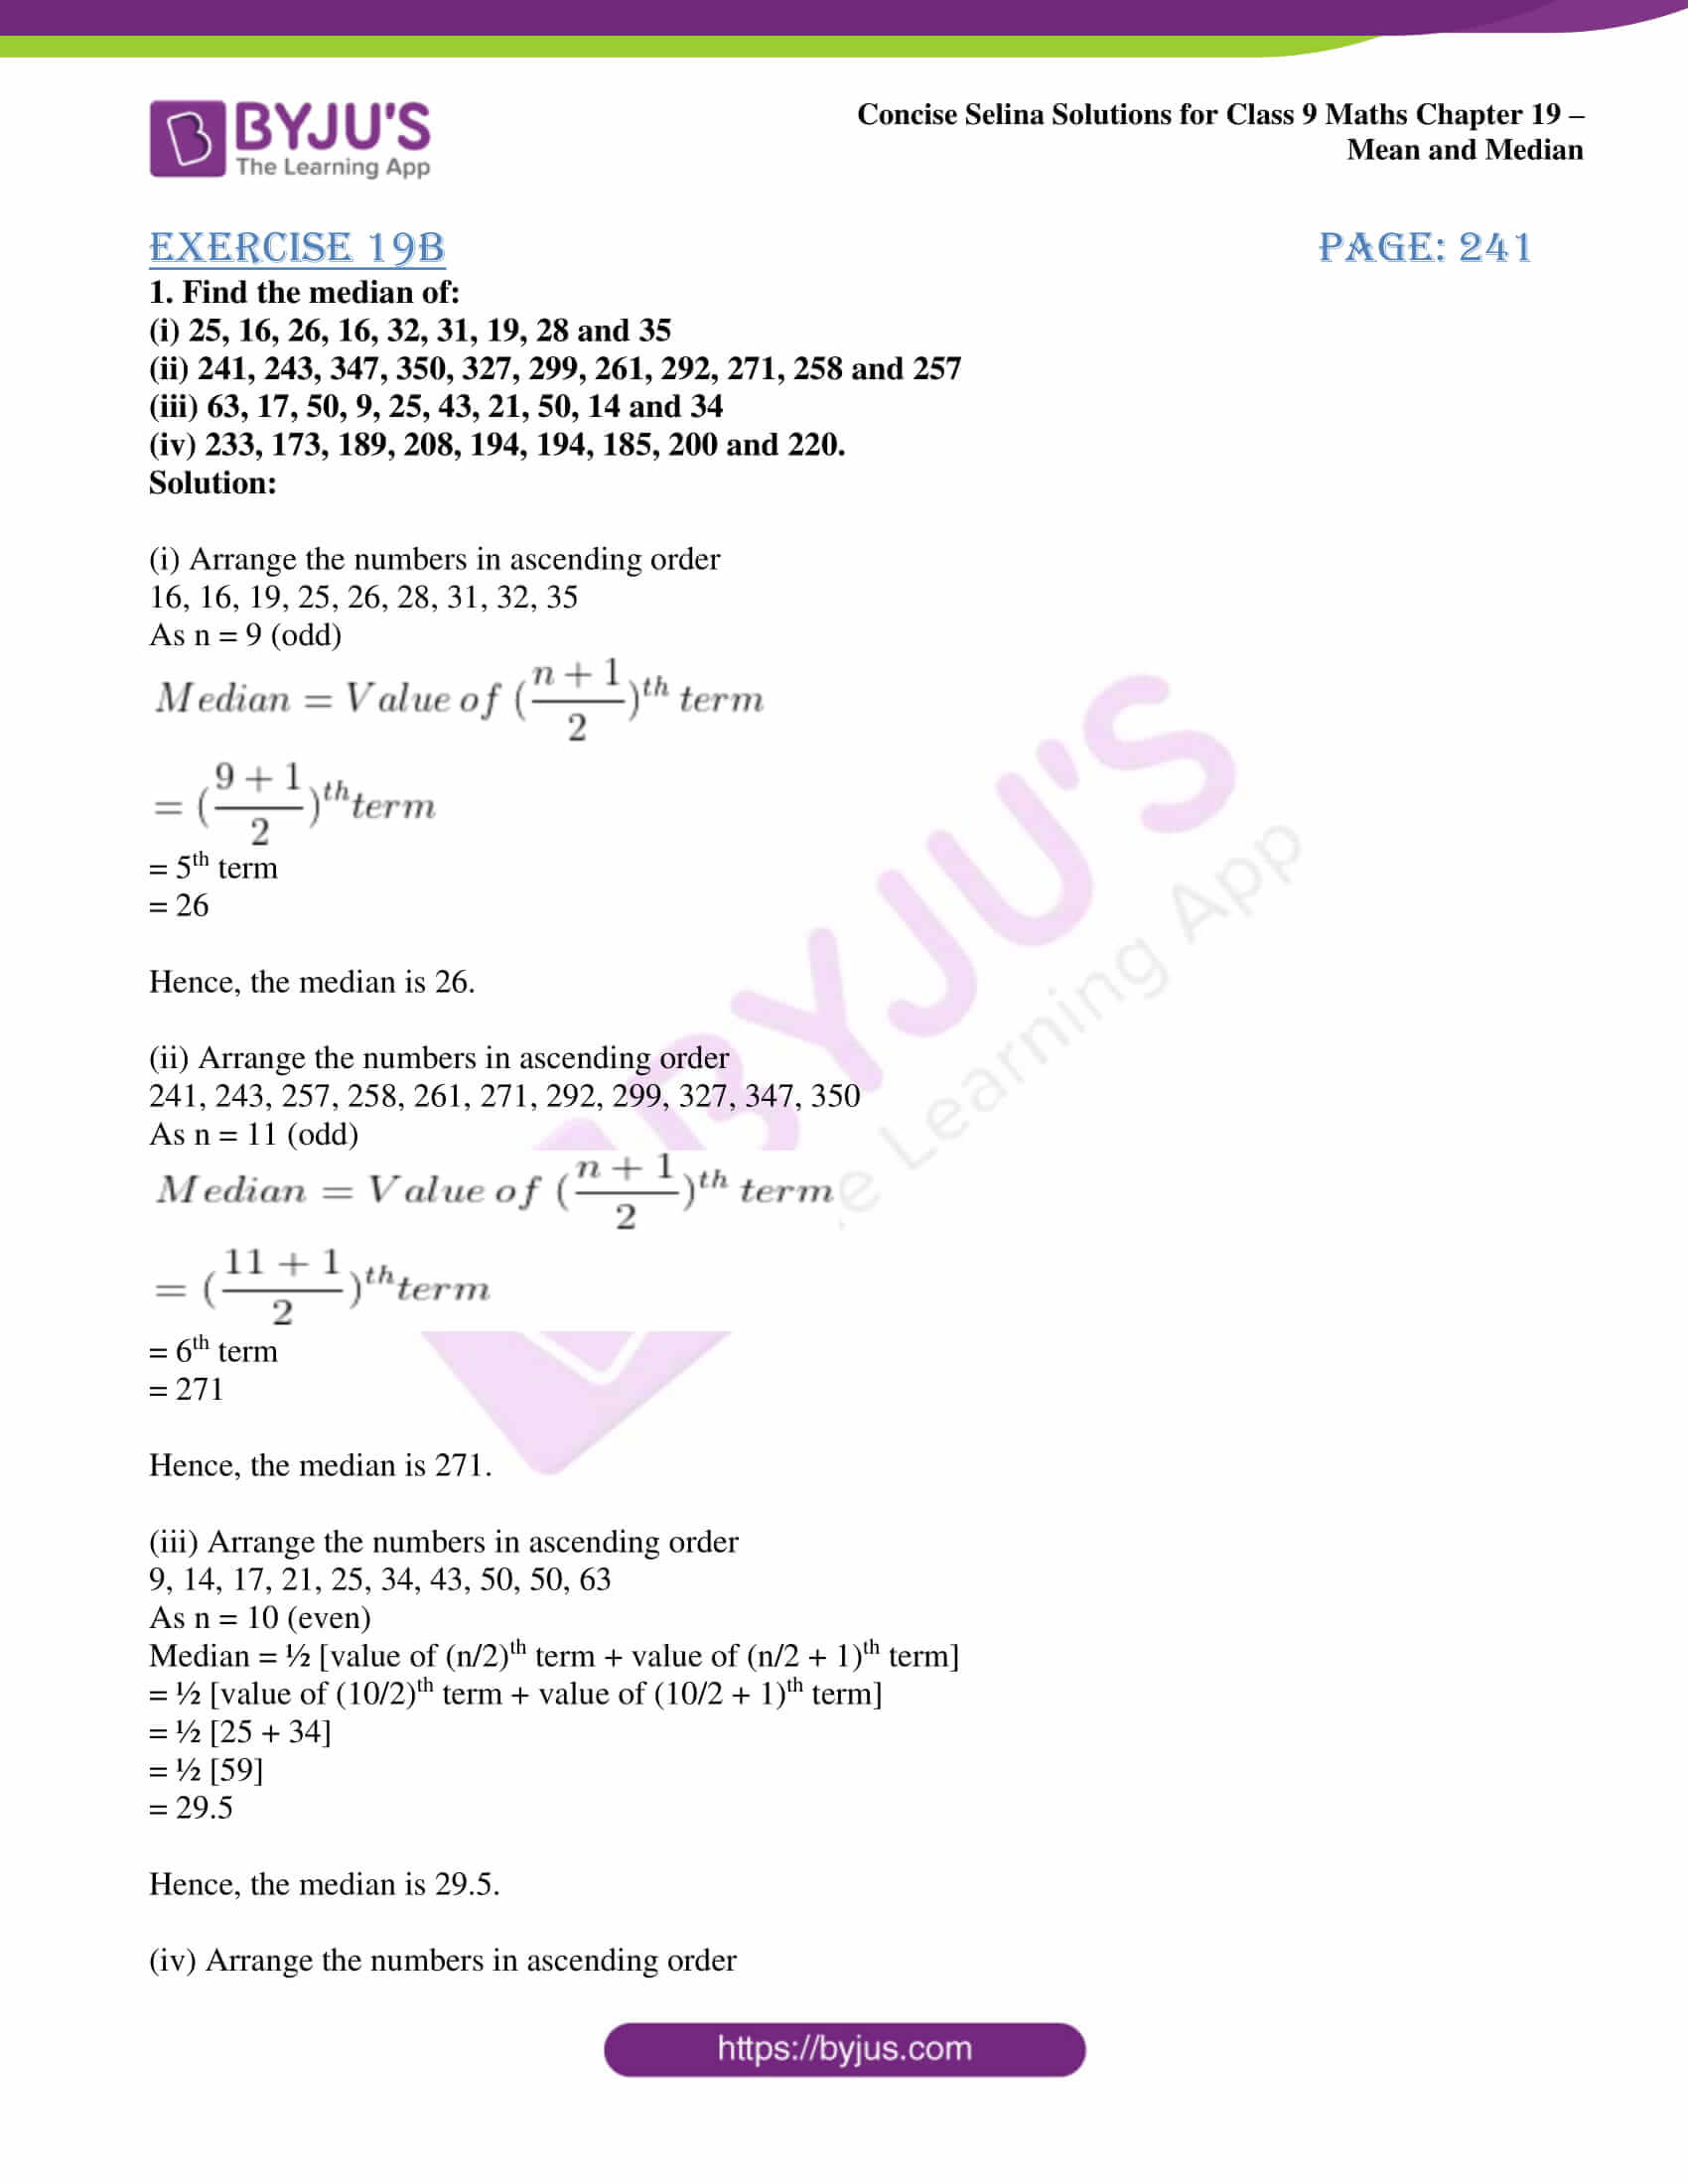 icse class 9 maths may10 selina solutions chapter 19 mean and median 06